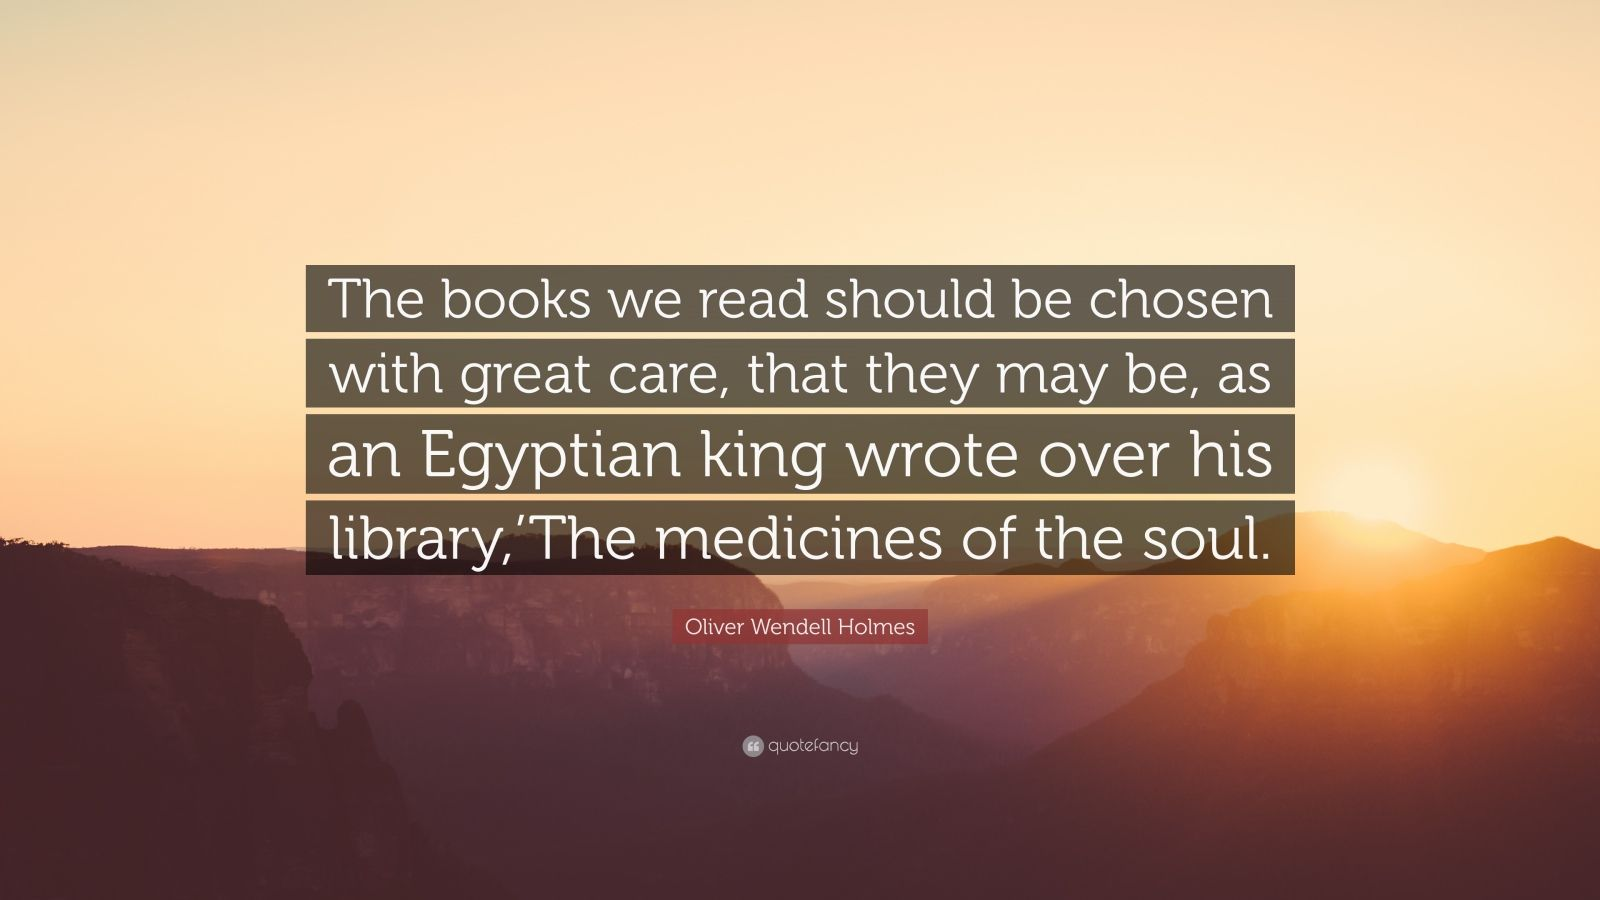 """Oliver Wendell Holmes Quote: """"The books we read should be chosen with great care, that they may be, as an Egyptian king wrote over his library,'The medicines of the soul."""""""